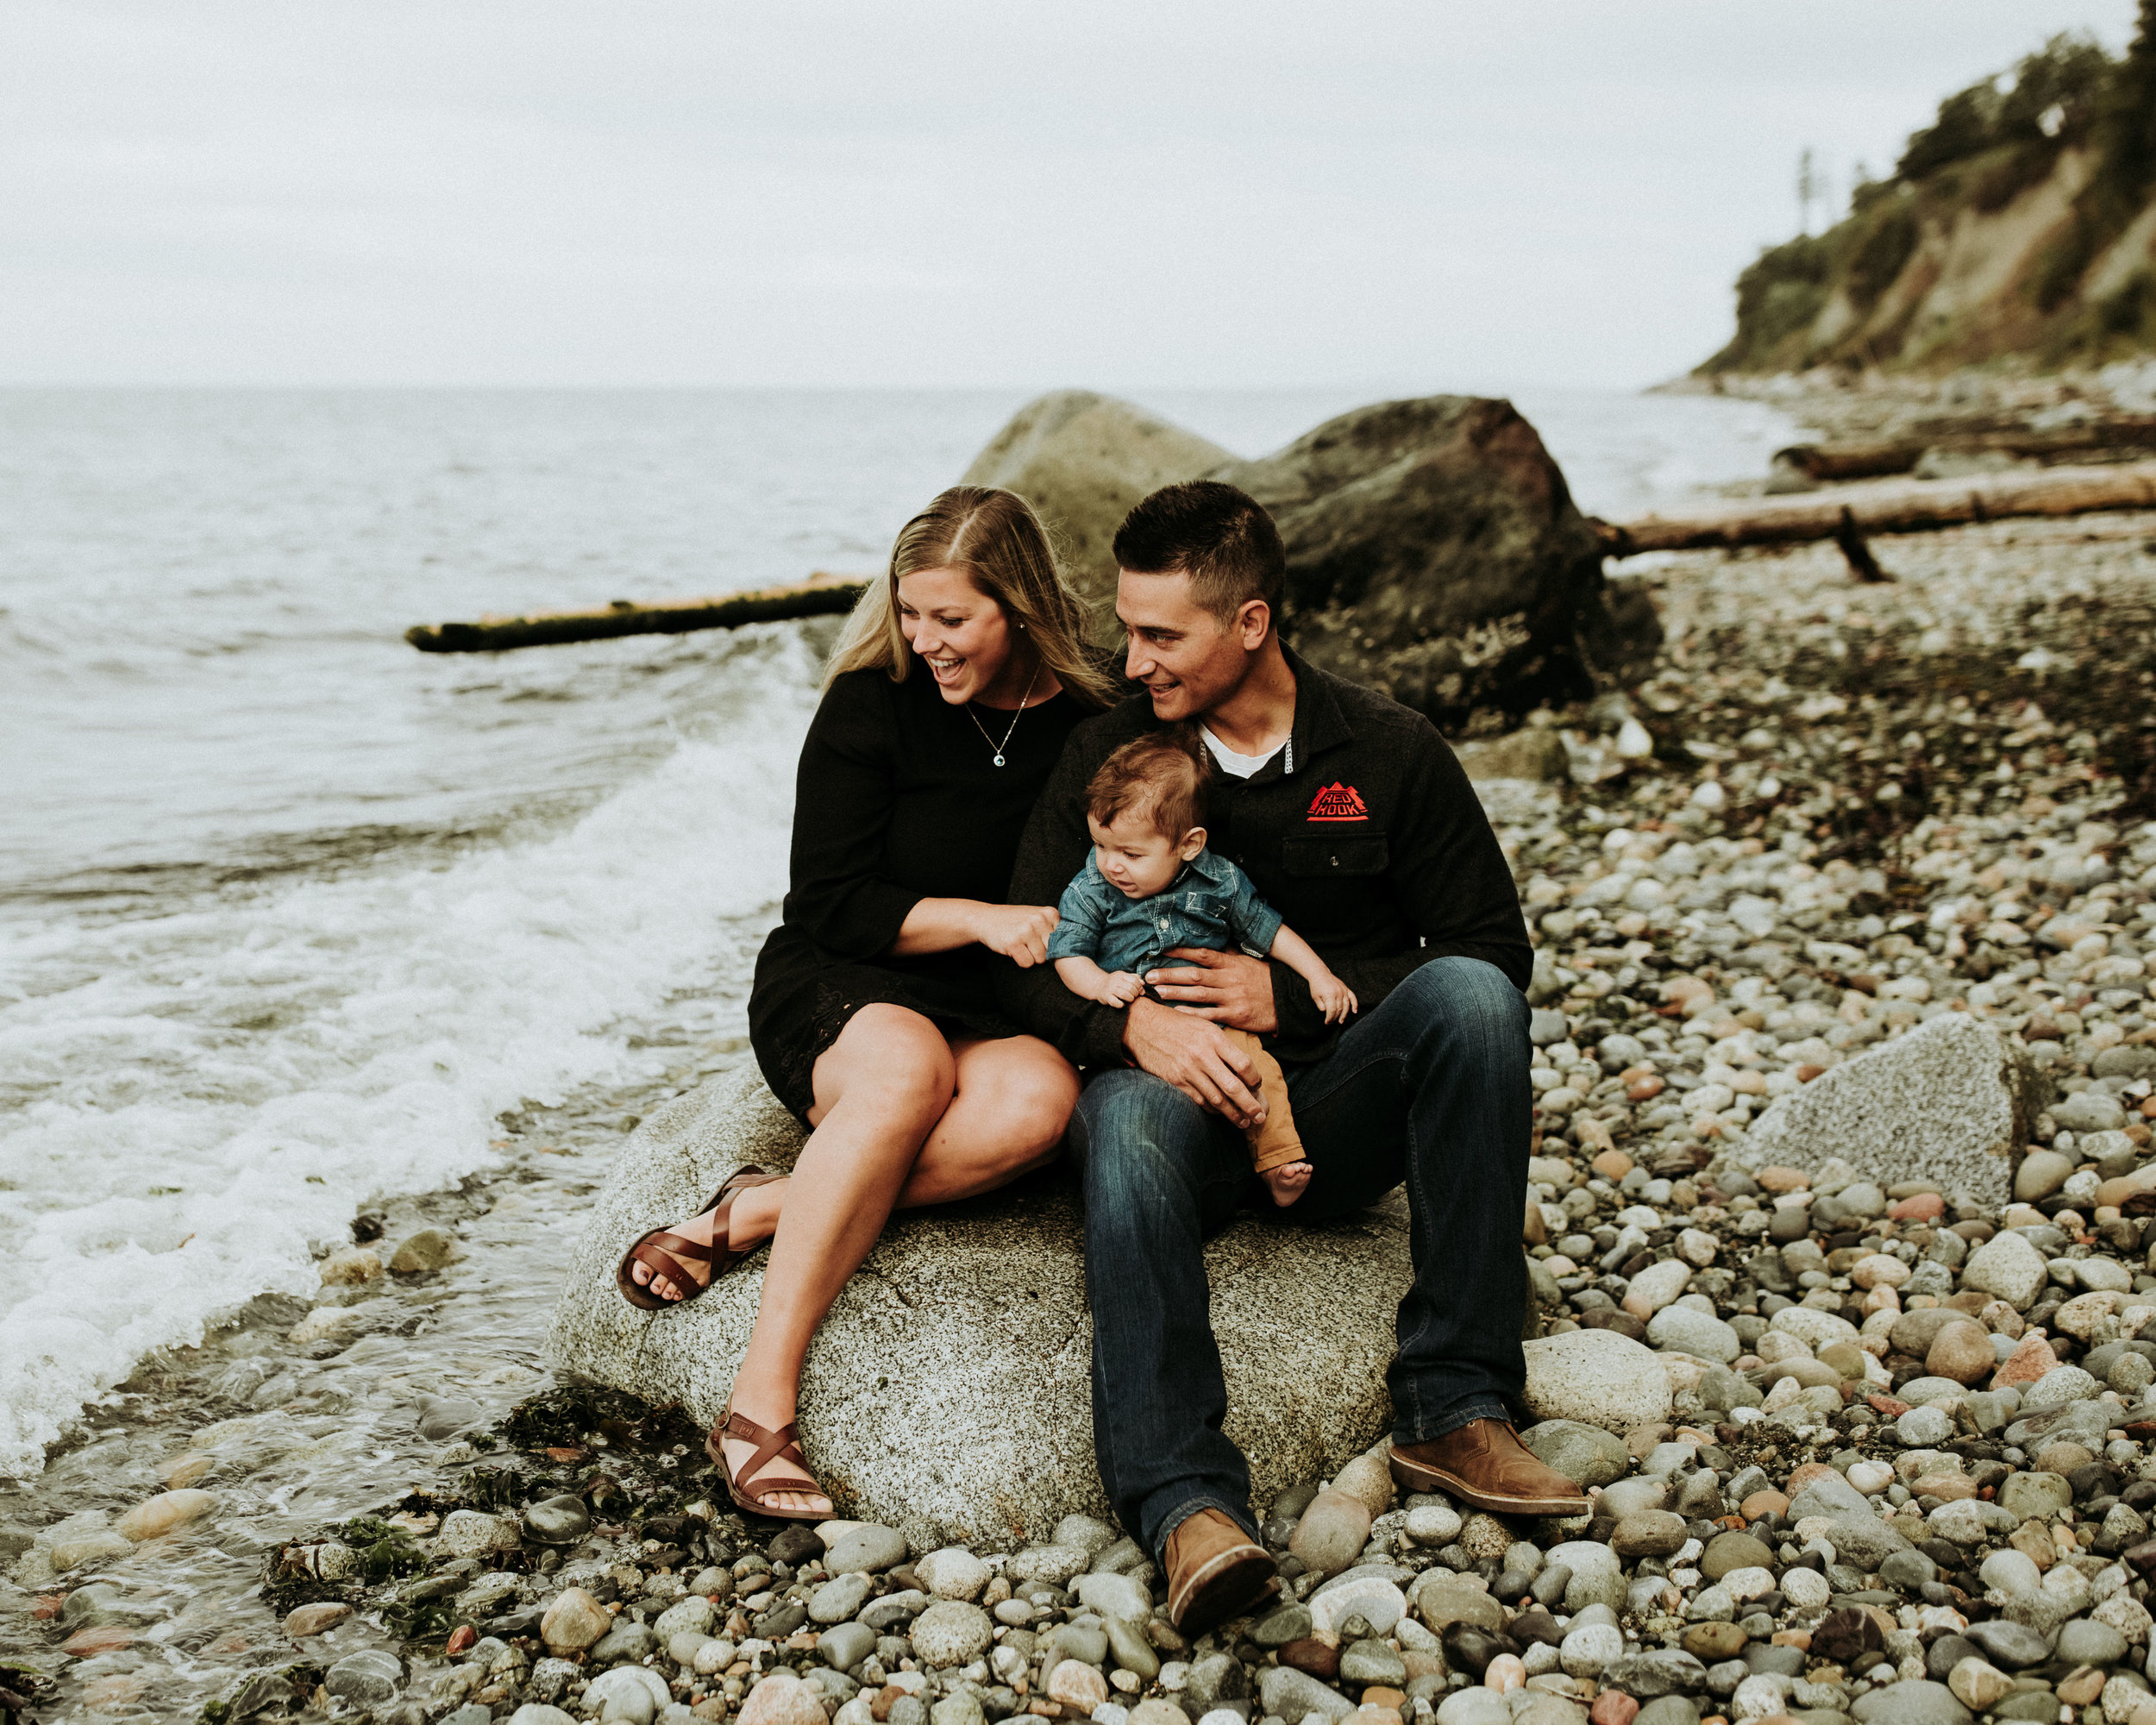 Family-Photographer-Bellingham-WA-Brianne-Bell-Photography-(Pier)-40.jpg